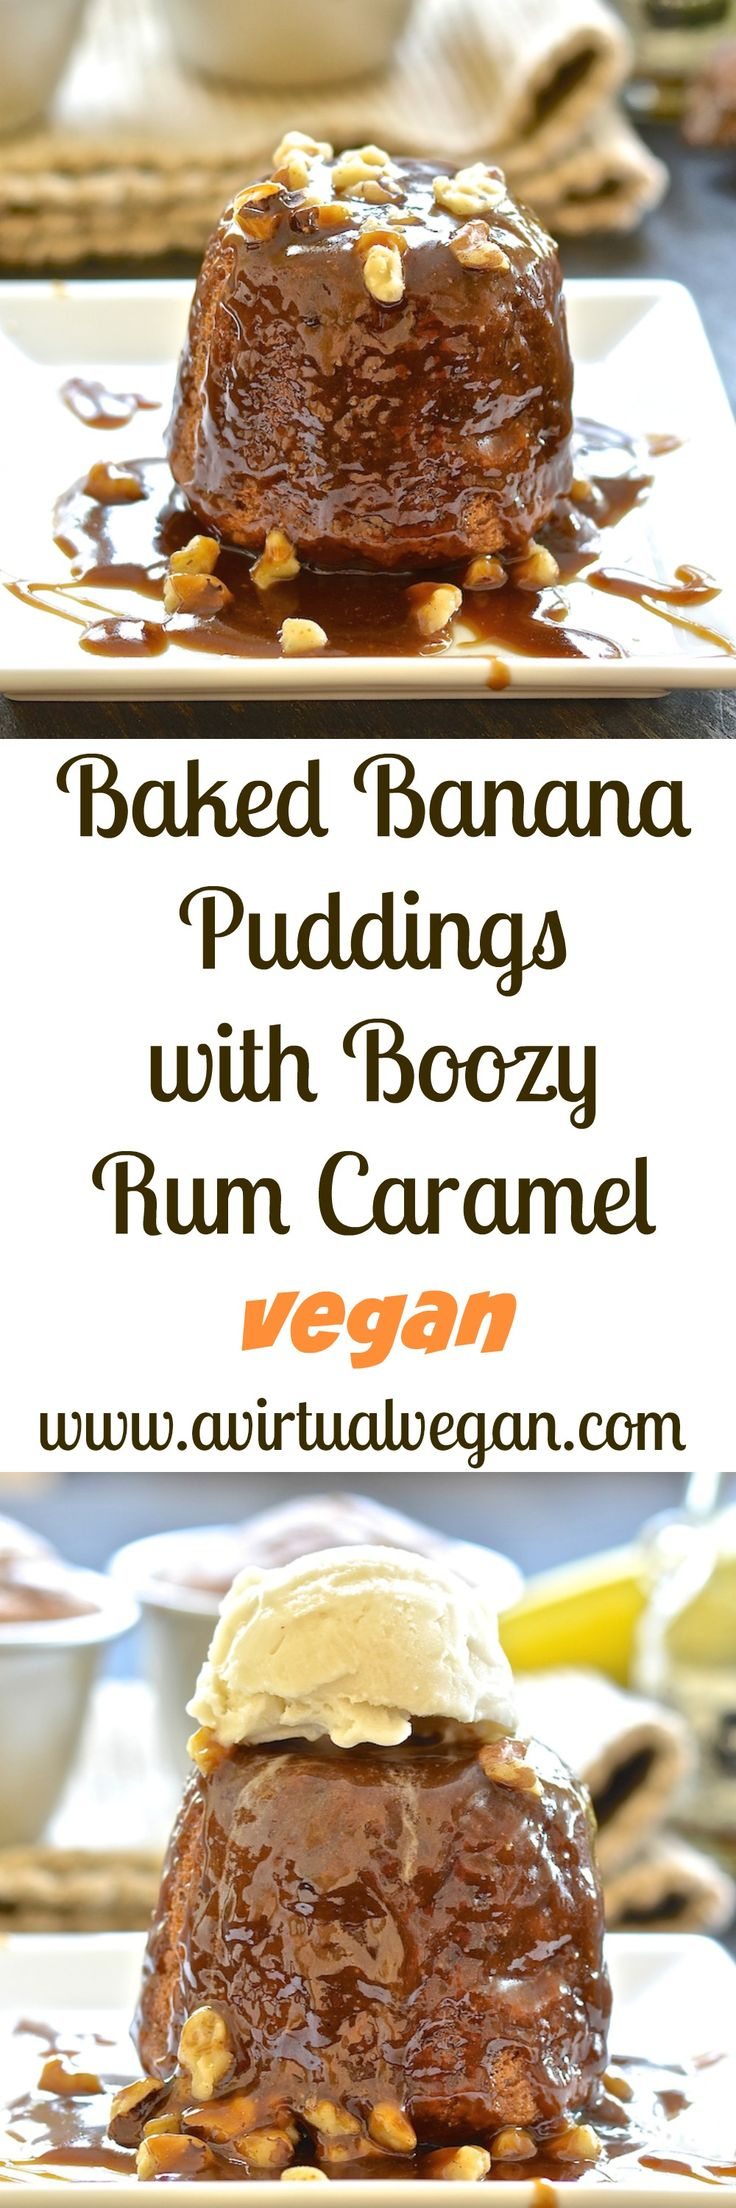 Deliciously moist & flavourful baked banana puddings with a spoon-licking, boozy, rum caramel sauce. Rich, sticky & truly indulgent! #vegan #dairy-free #egg-free